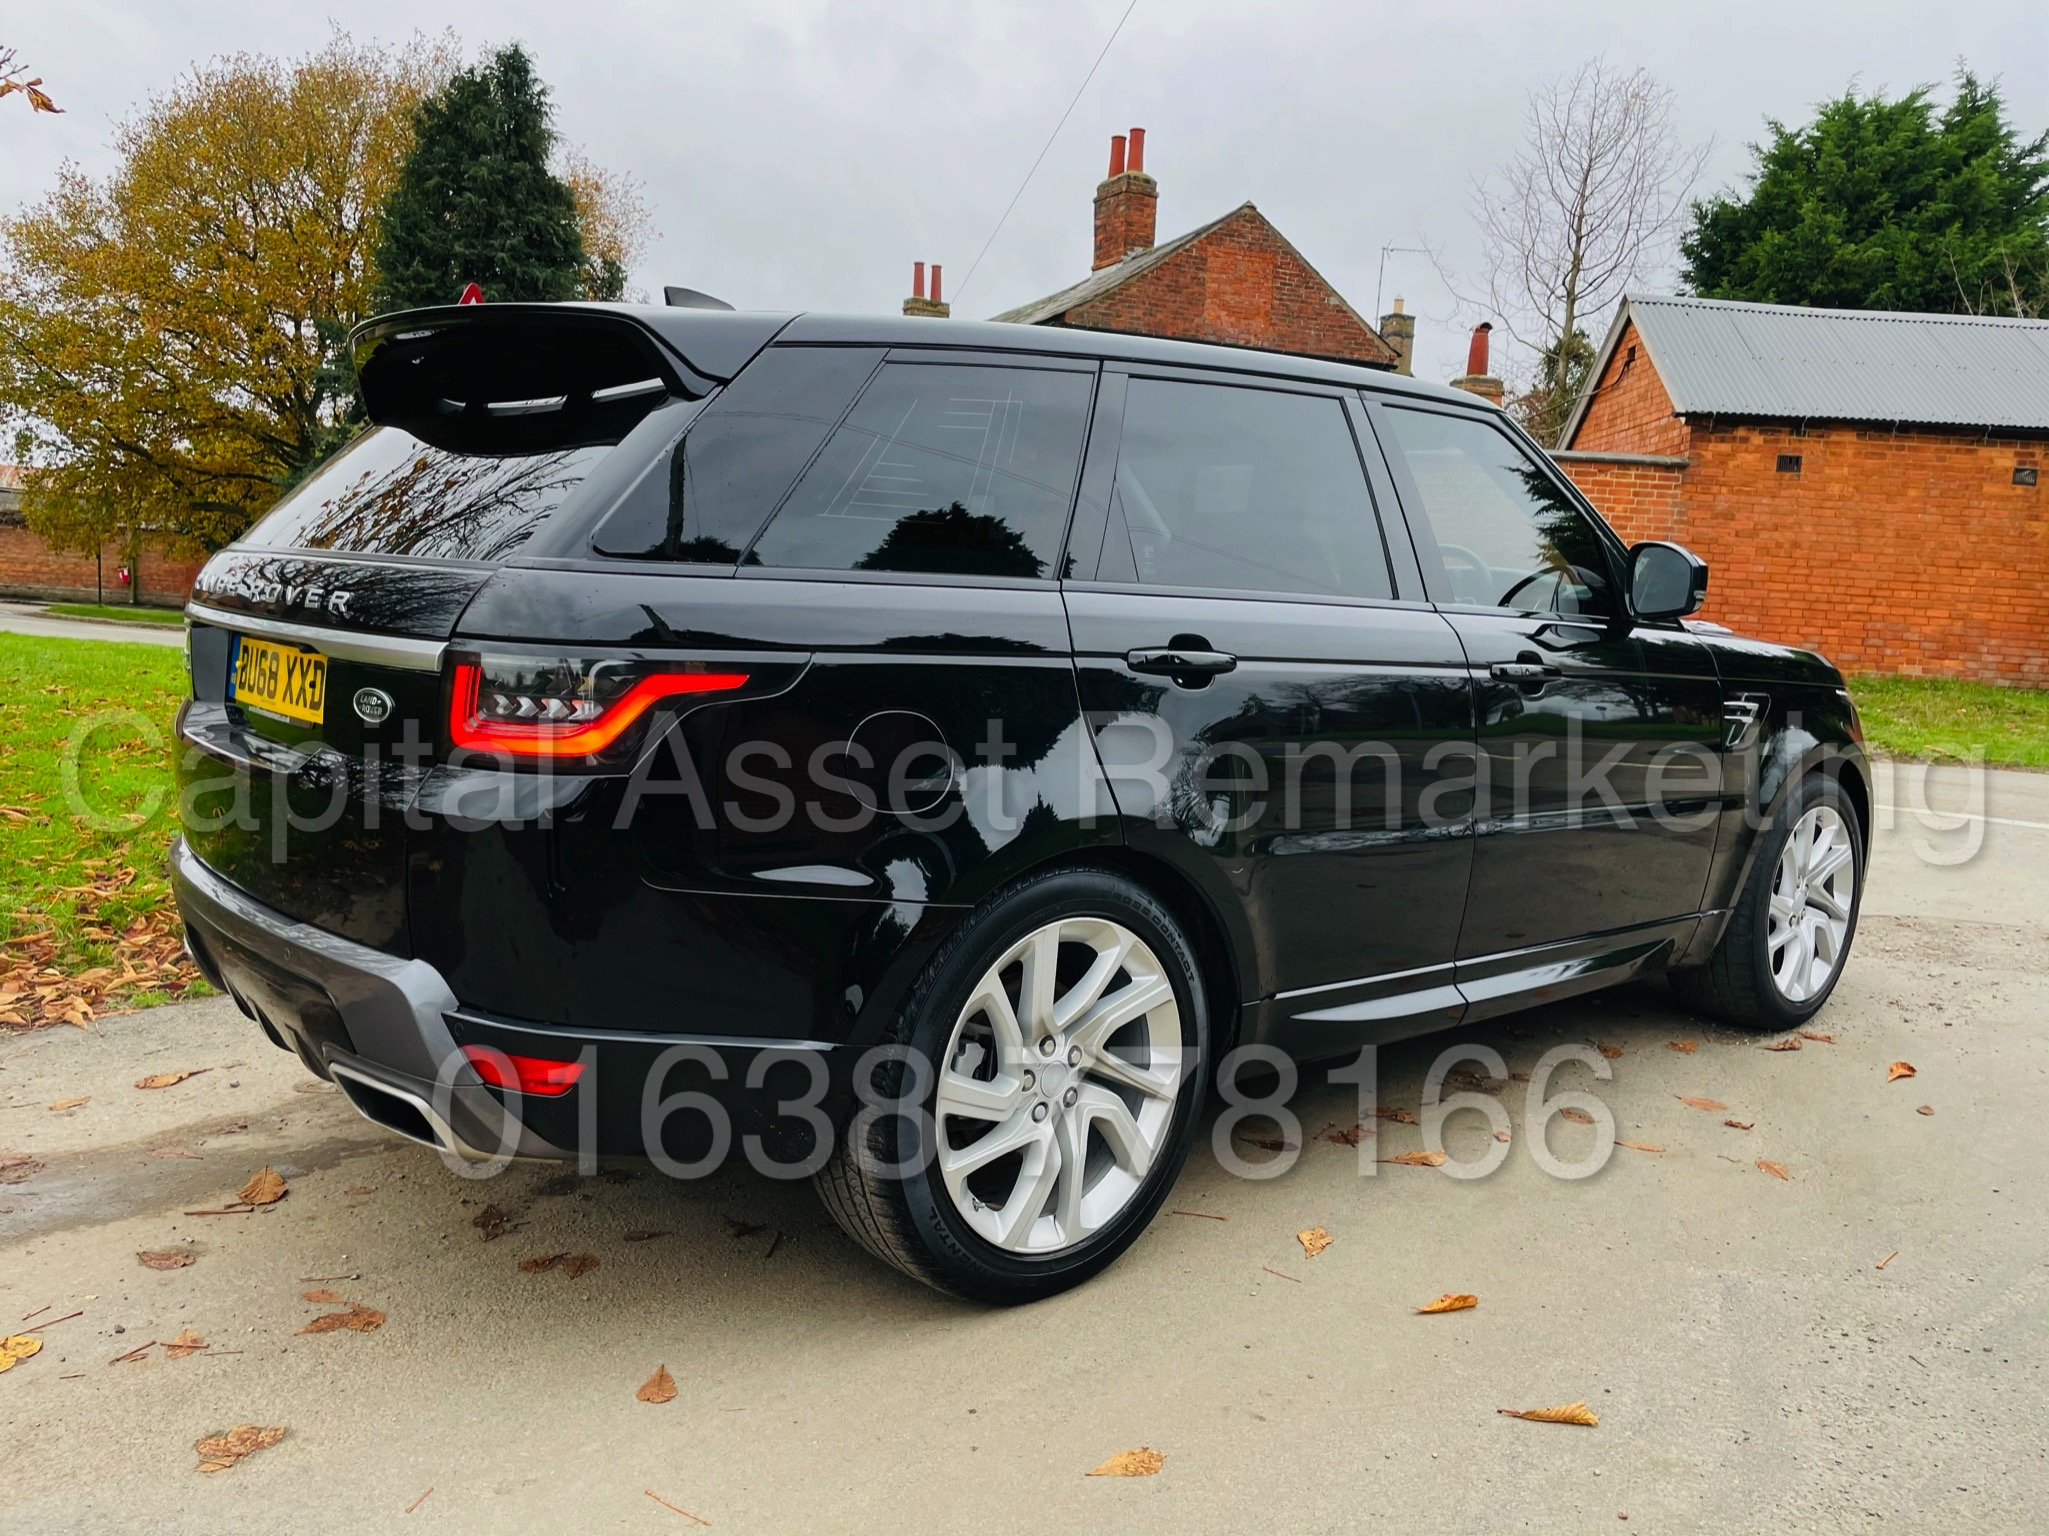 RANGE ROVER SPORT *HSE EDITION* SUV (2019 MODEL) '3.0 SDV6 - 306 BHP - 8 SPEED AUTO' *FULLY LOADED* - Image 13 of 56